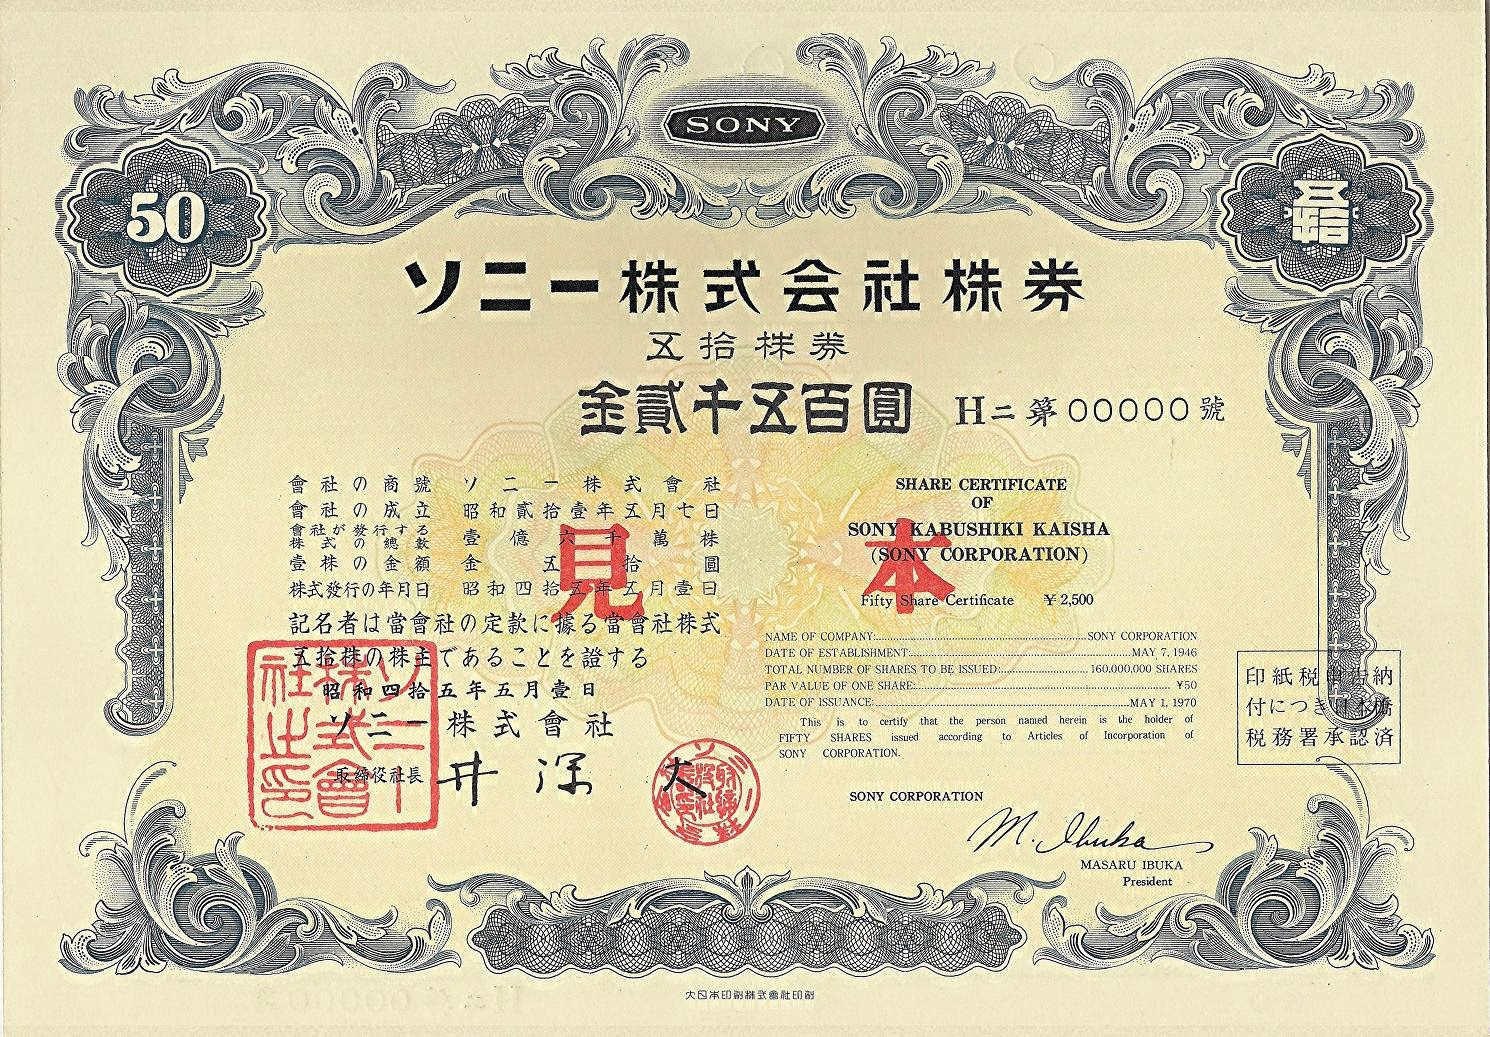 Frankys Scripophily BlogSpot Reading Japanese dates on stock – Company Share Certificates